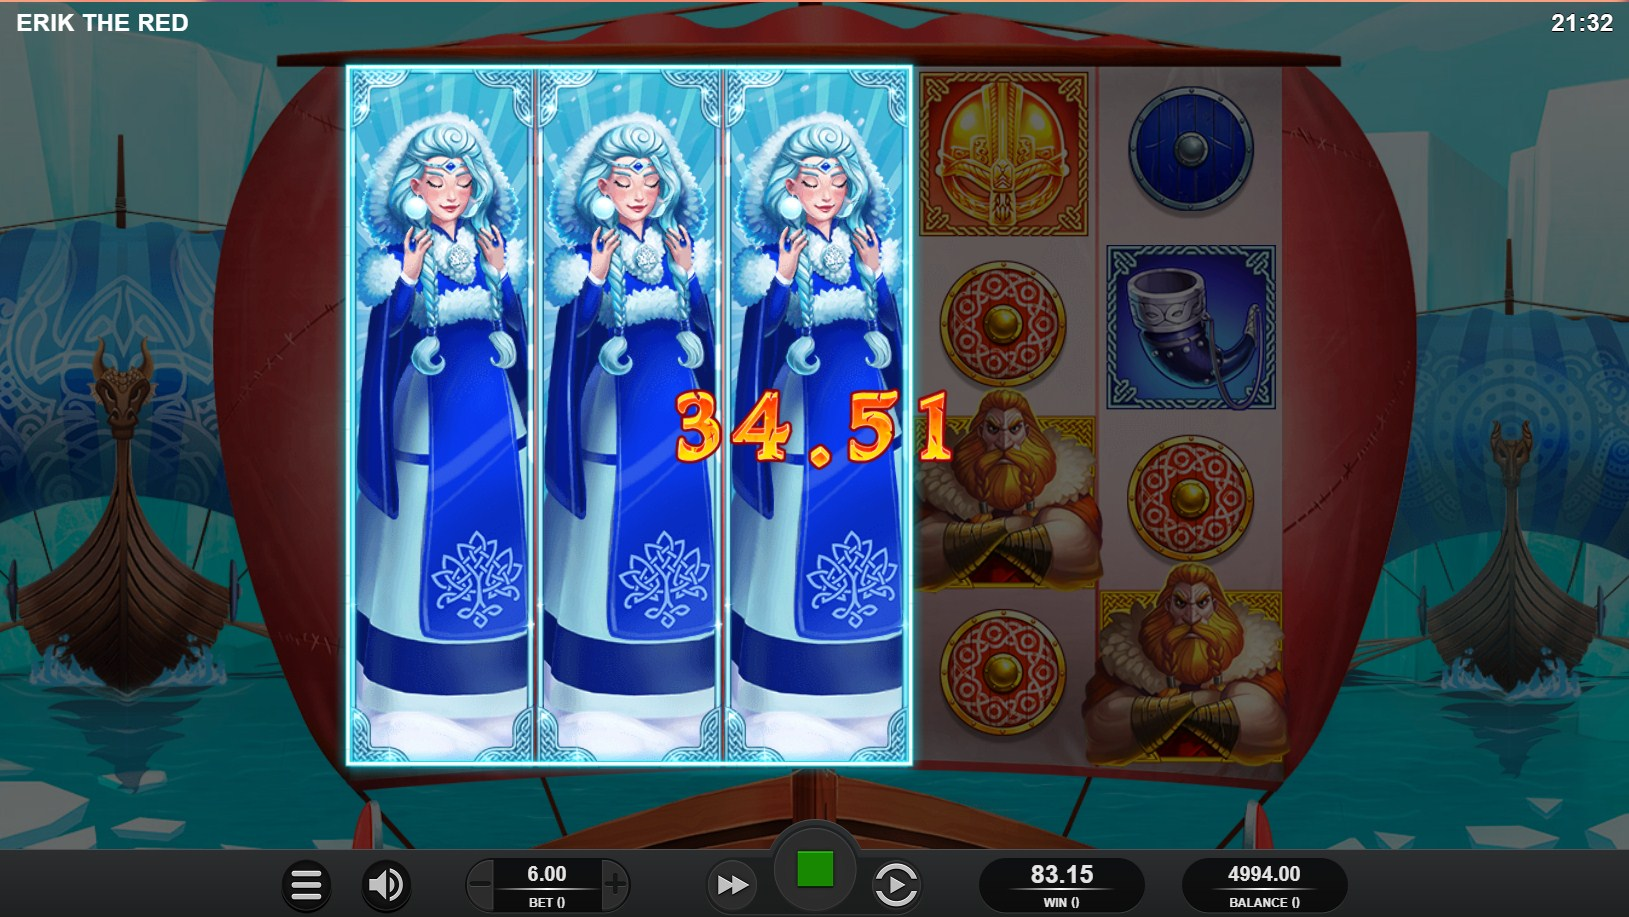 Erik The Red Video Slot